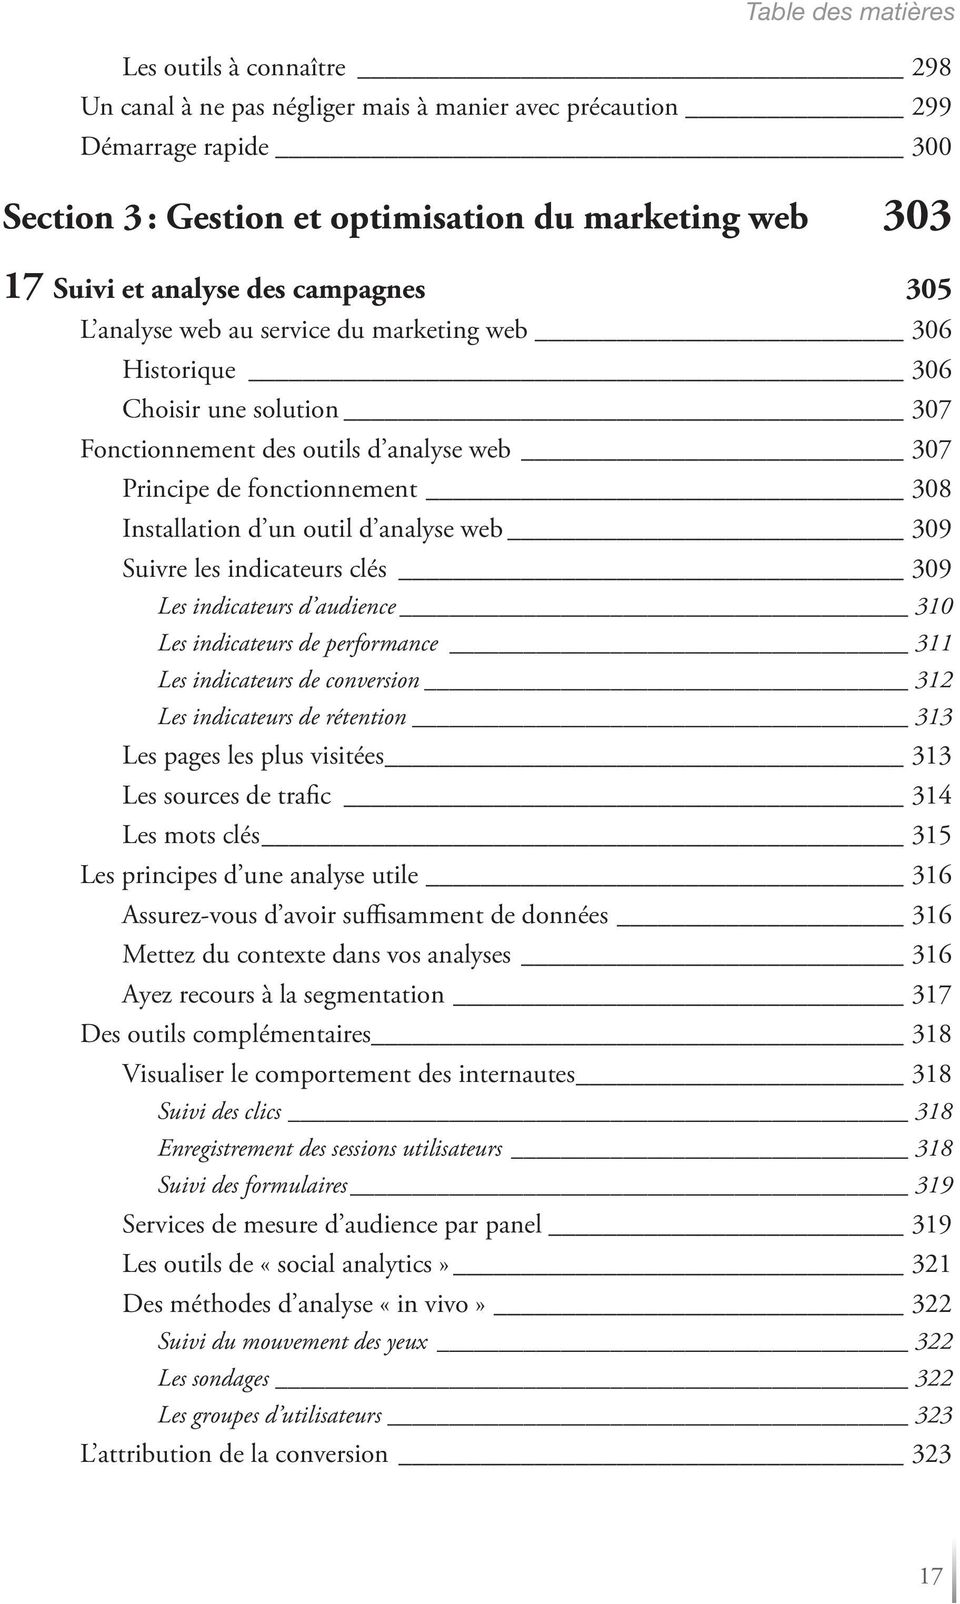 d un outil d analyse web 309 Suivre les indicateurs clés 309 Les indicateurs d audience 310 Les indicateurs de performance 311 Les indicateurs de conversion 312 Les indicateurs de rétention 313 Les